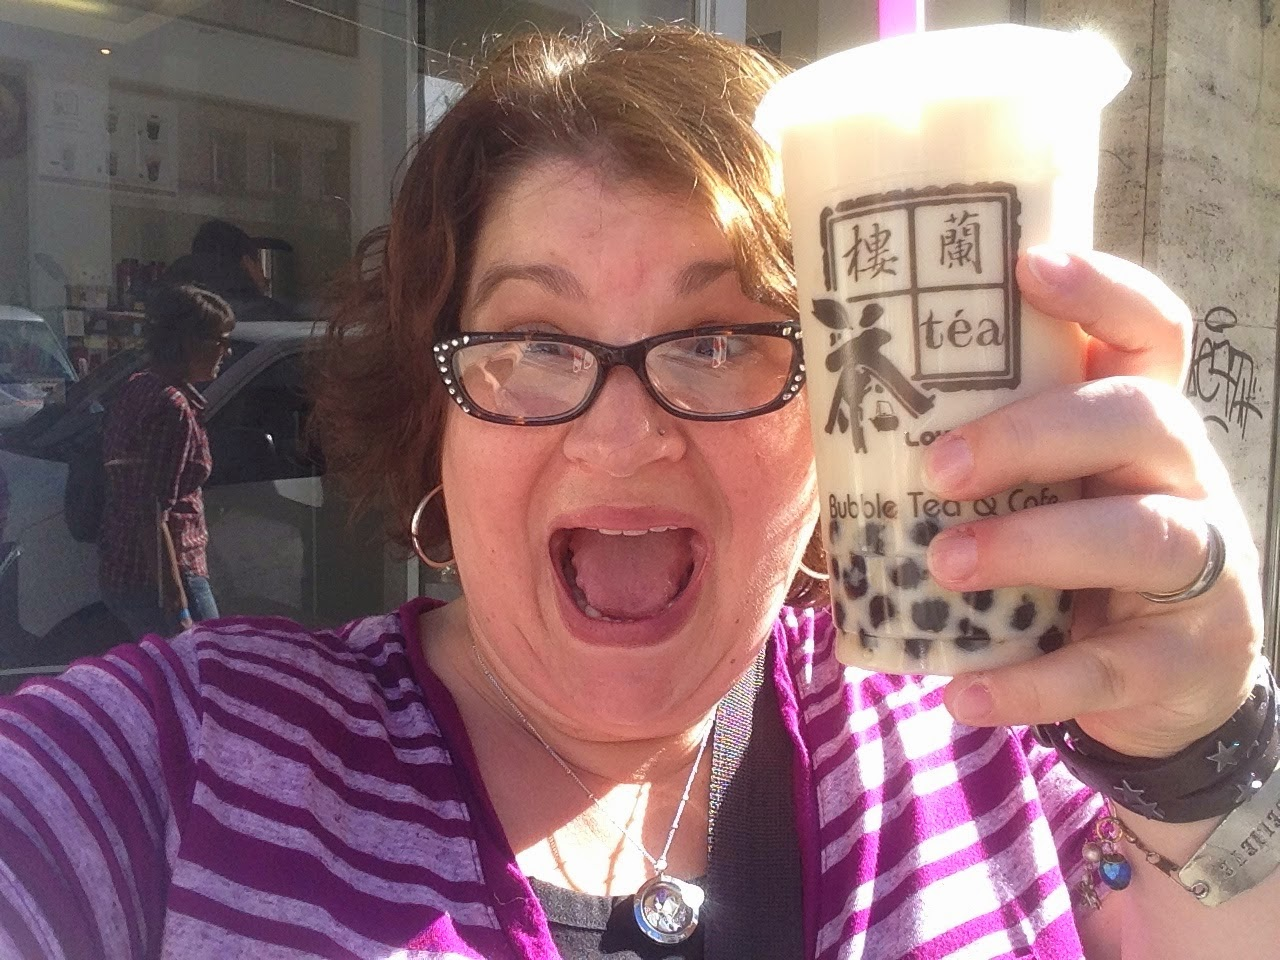 Bubble Tea in Munich Germany 2014